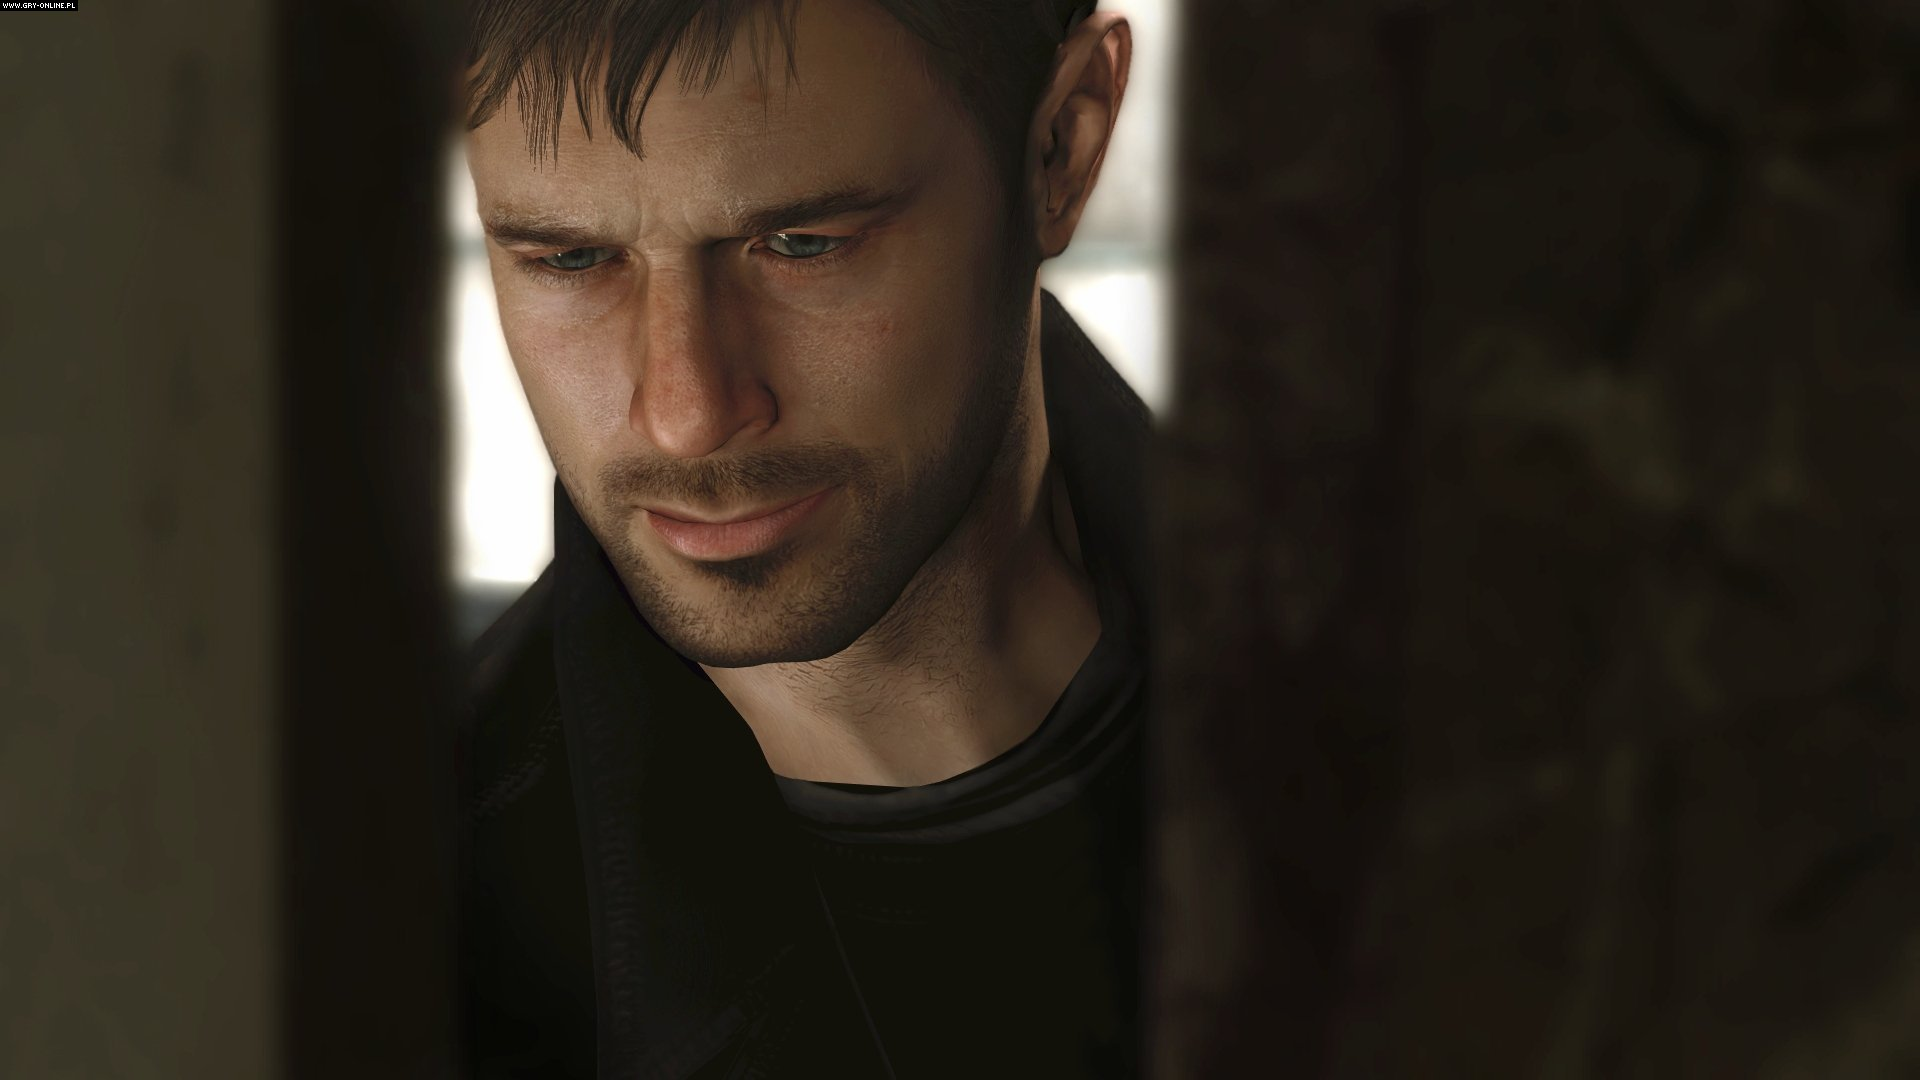 Heavy Rain PS4 Games Image 5/92, Quantic Dream, Sony Interactive Entertainment